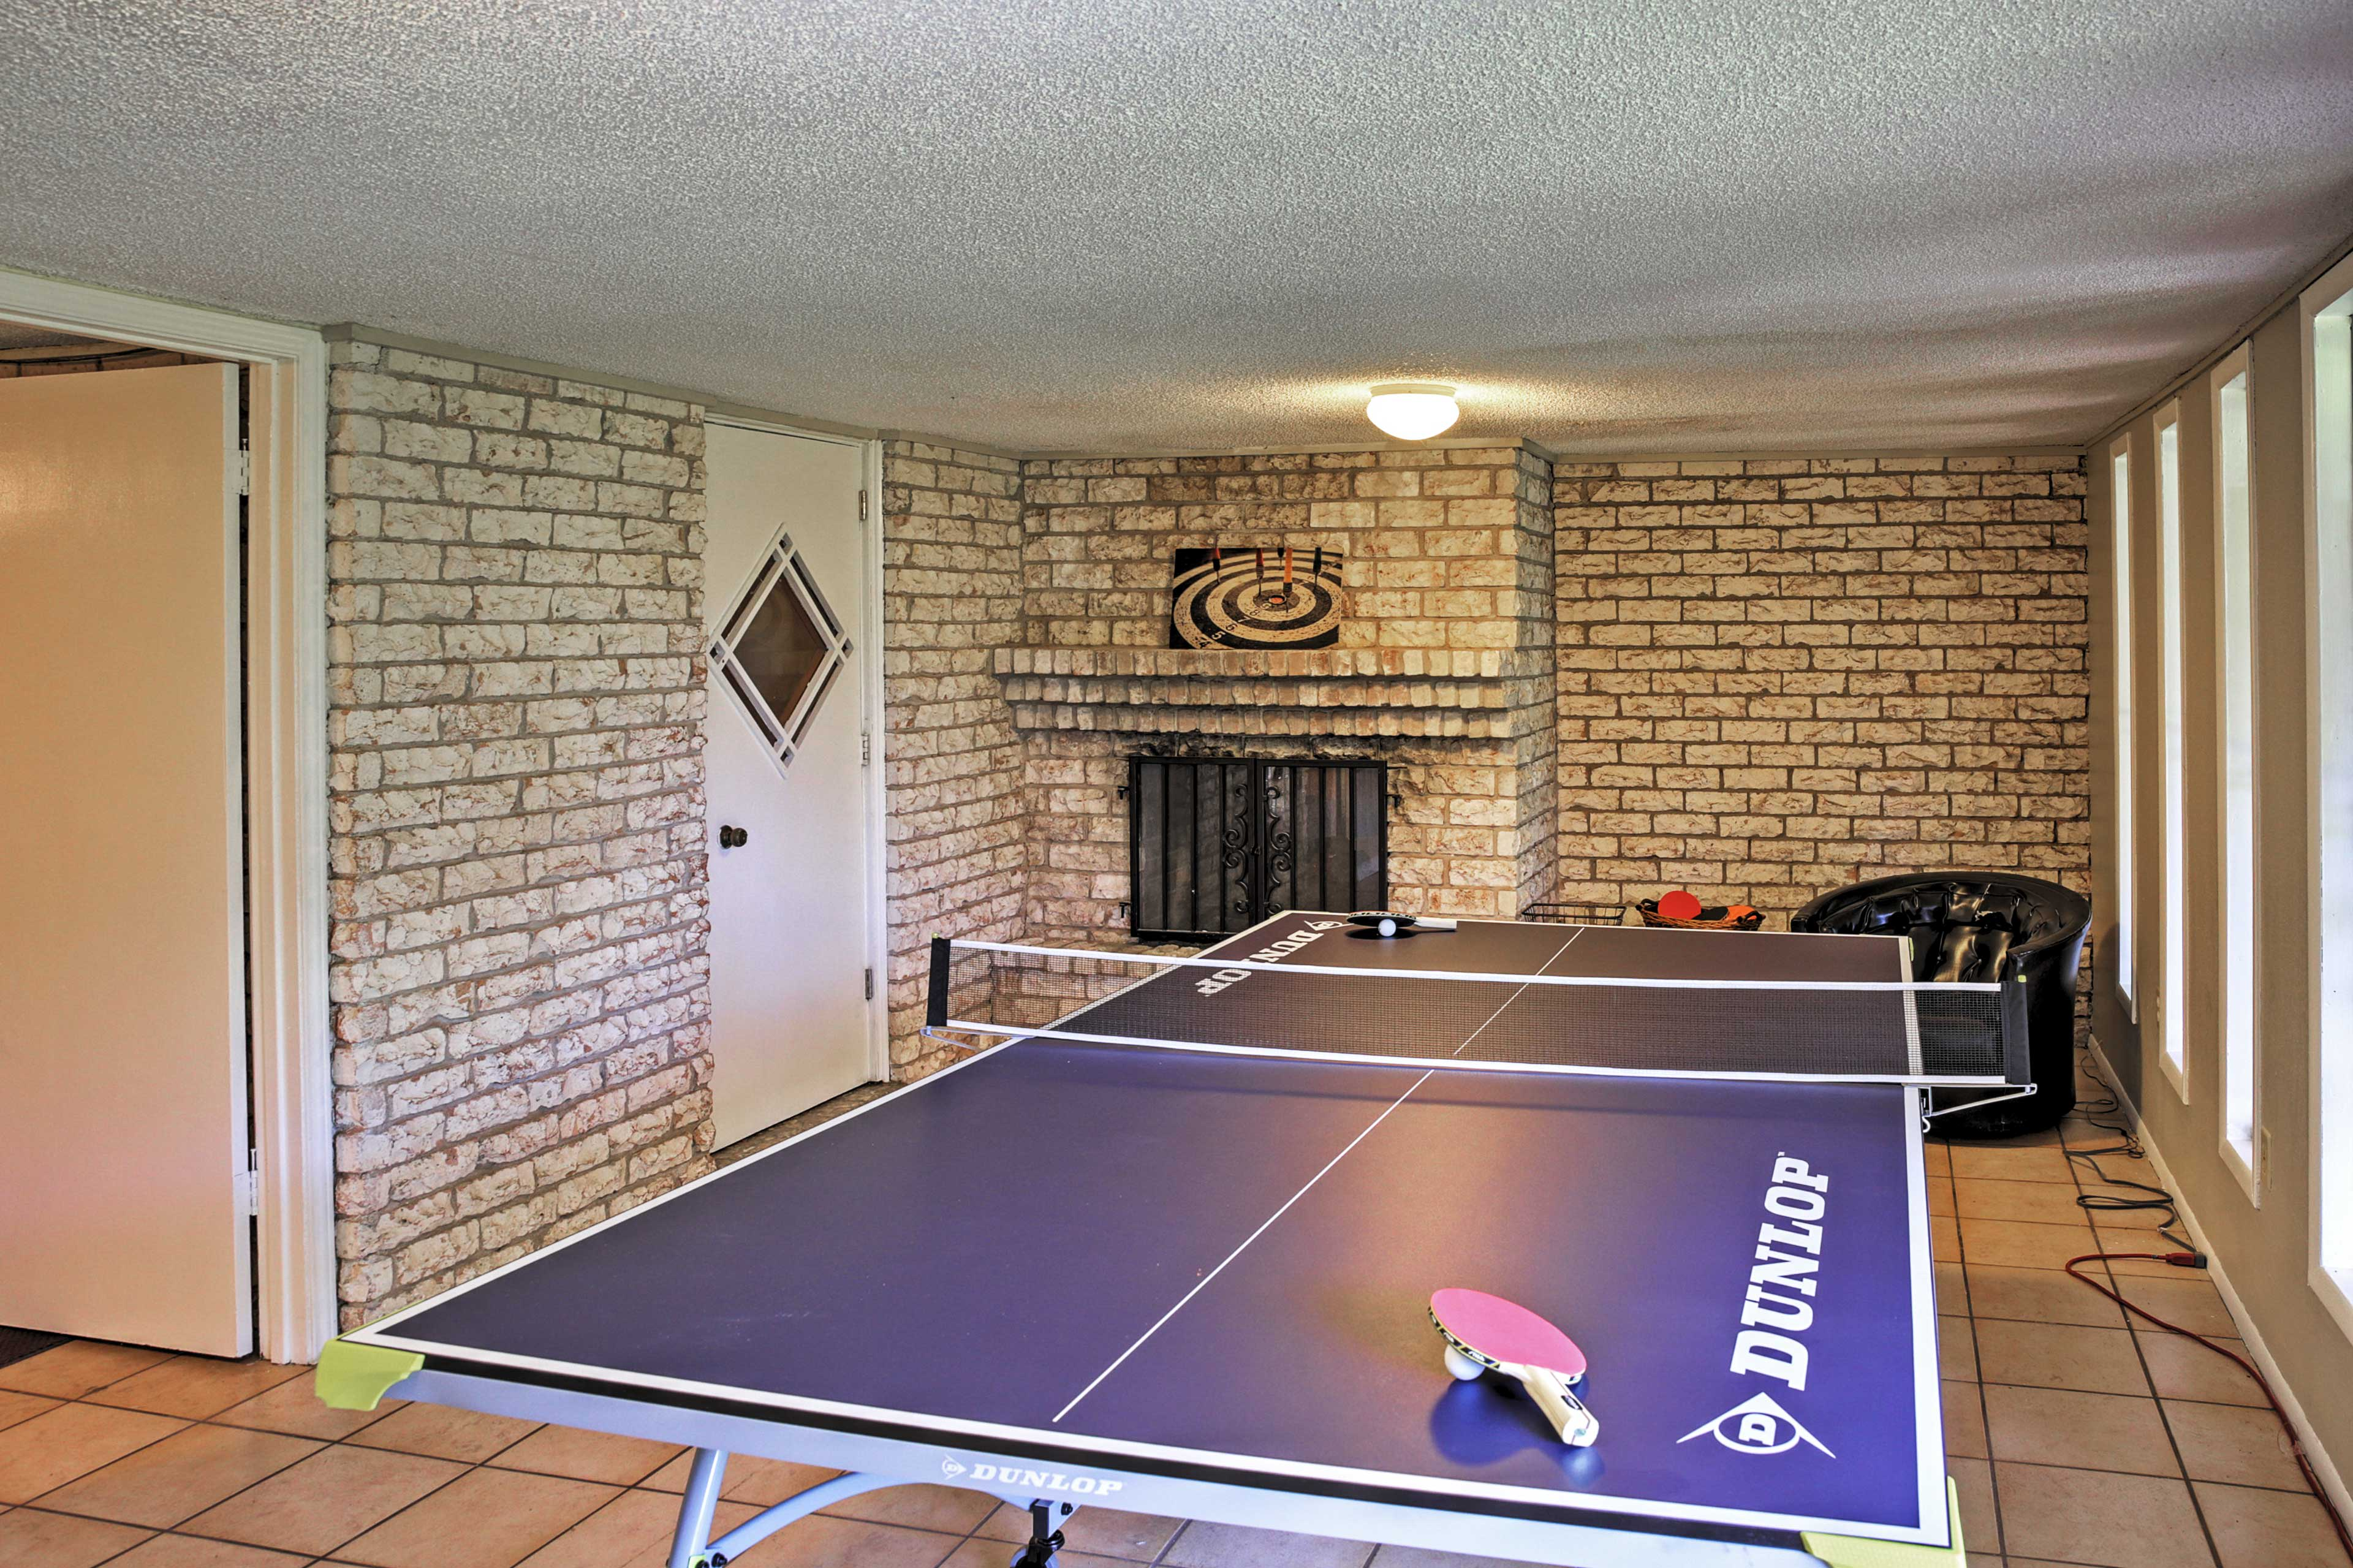 Challenge your loved ones to a friendly ping pong match!